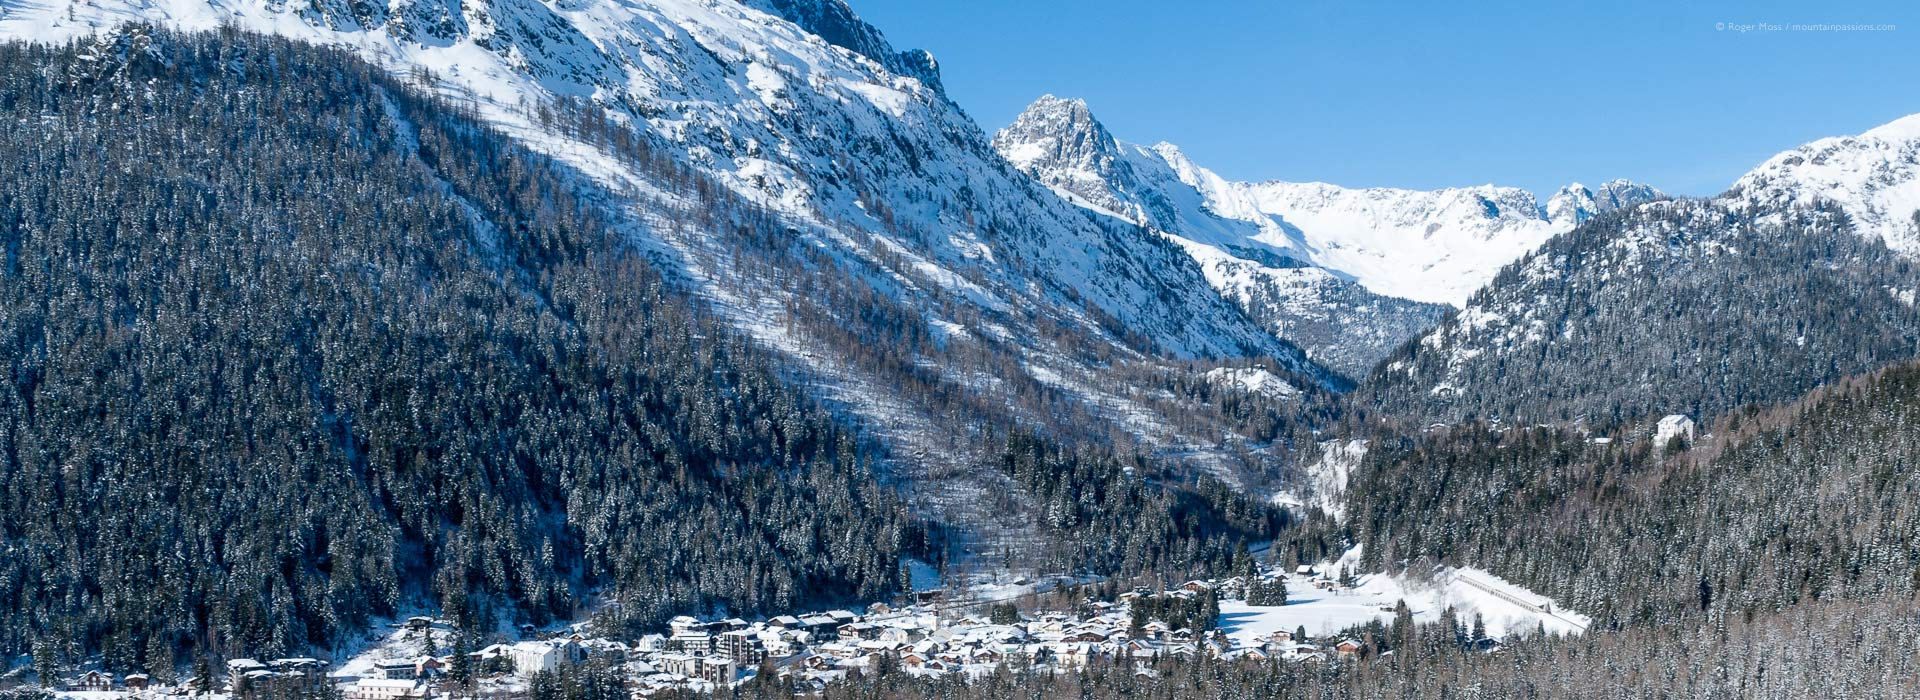 argentière ski resort review | french alps | mountainpassions